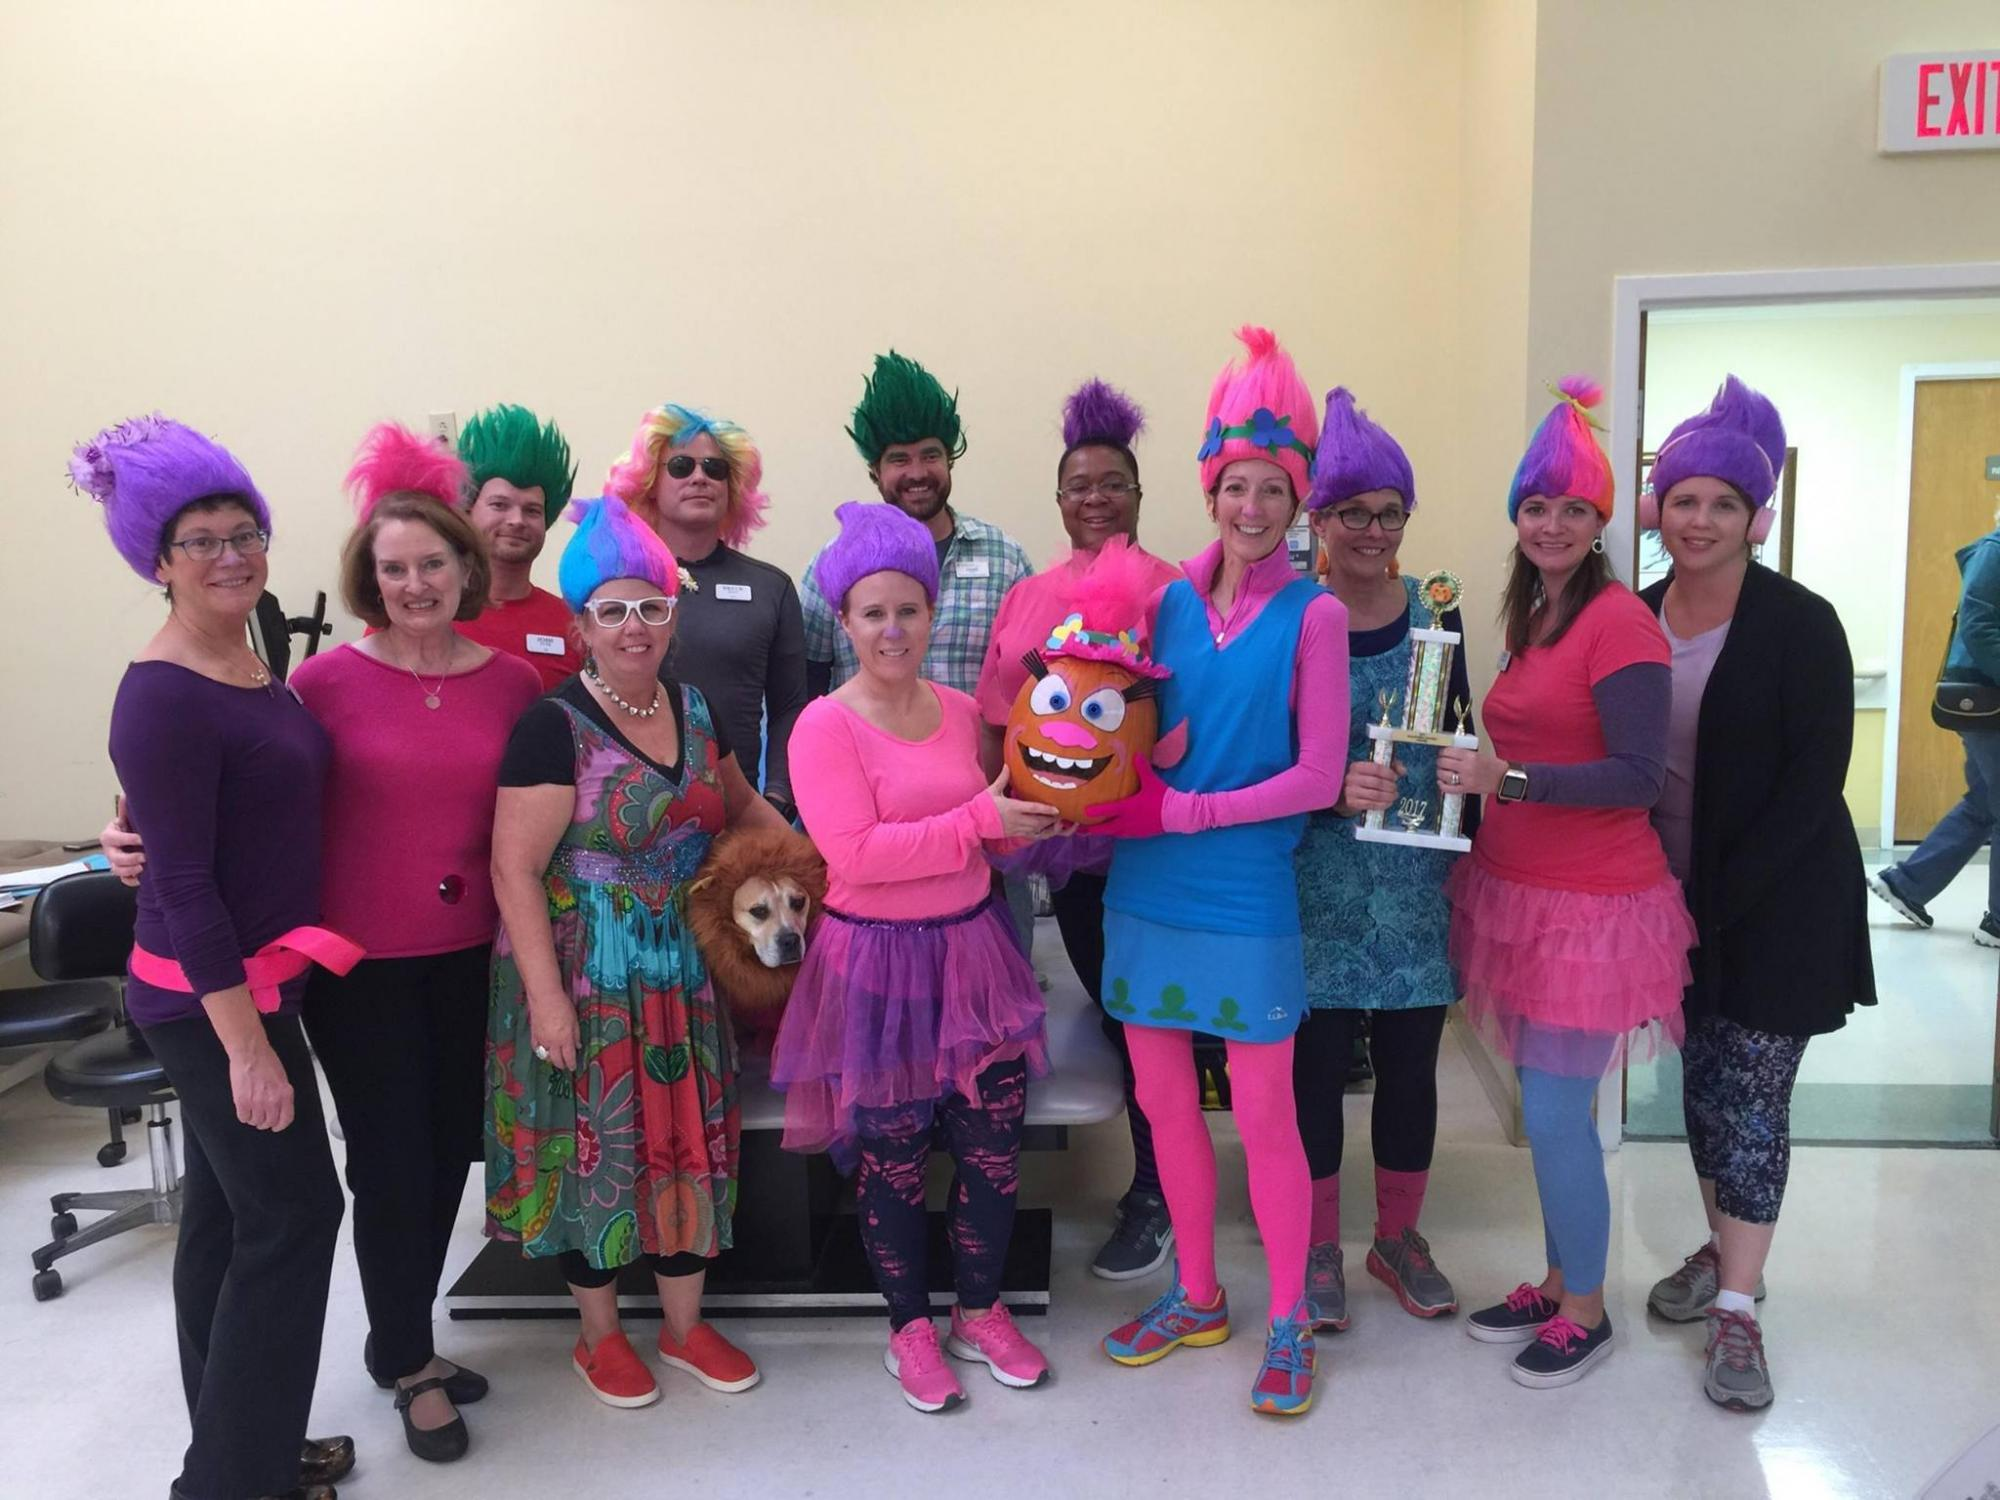 Beaufont team dressed up as Trolls for Halloween 2017